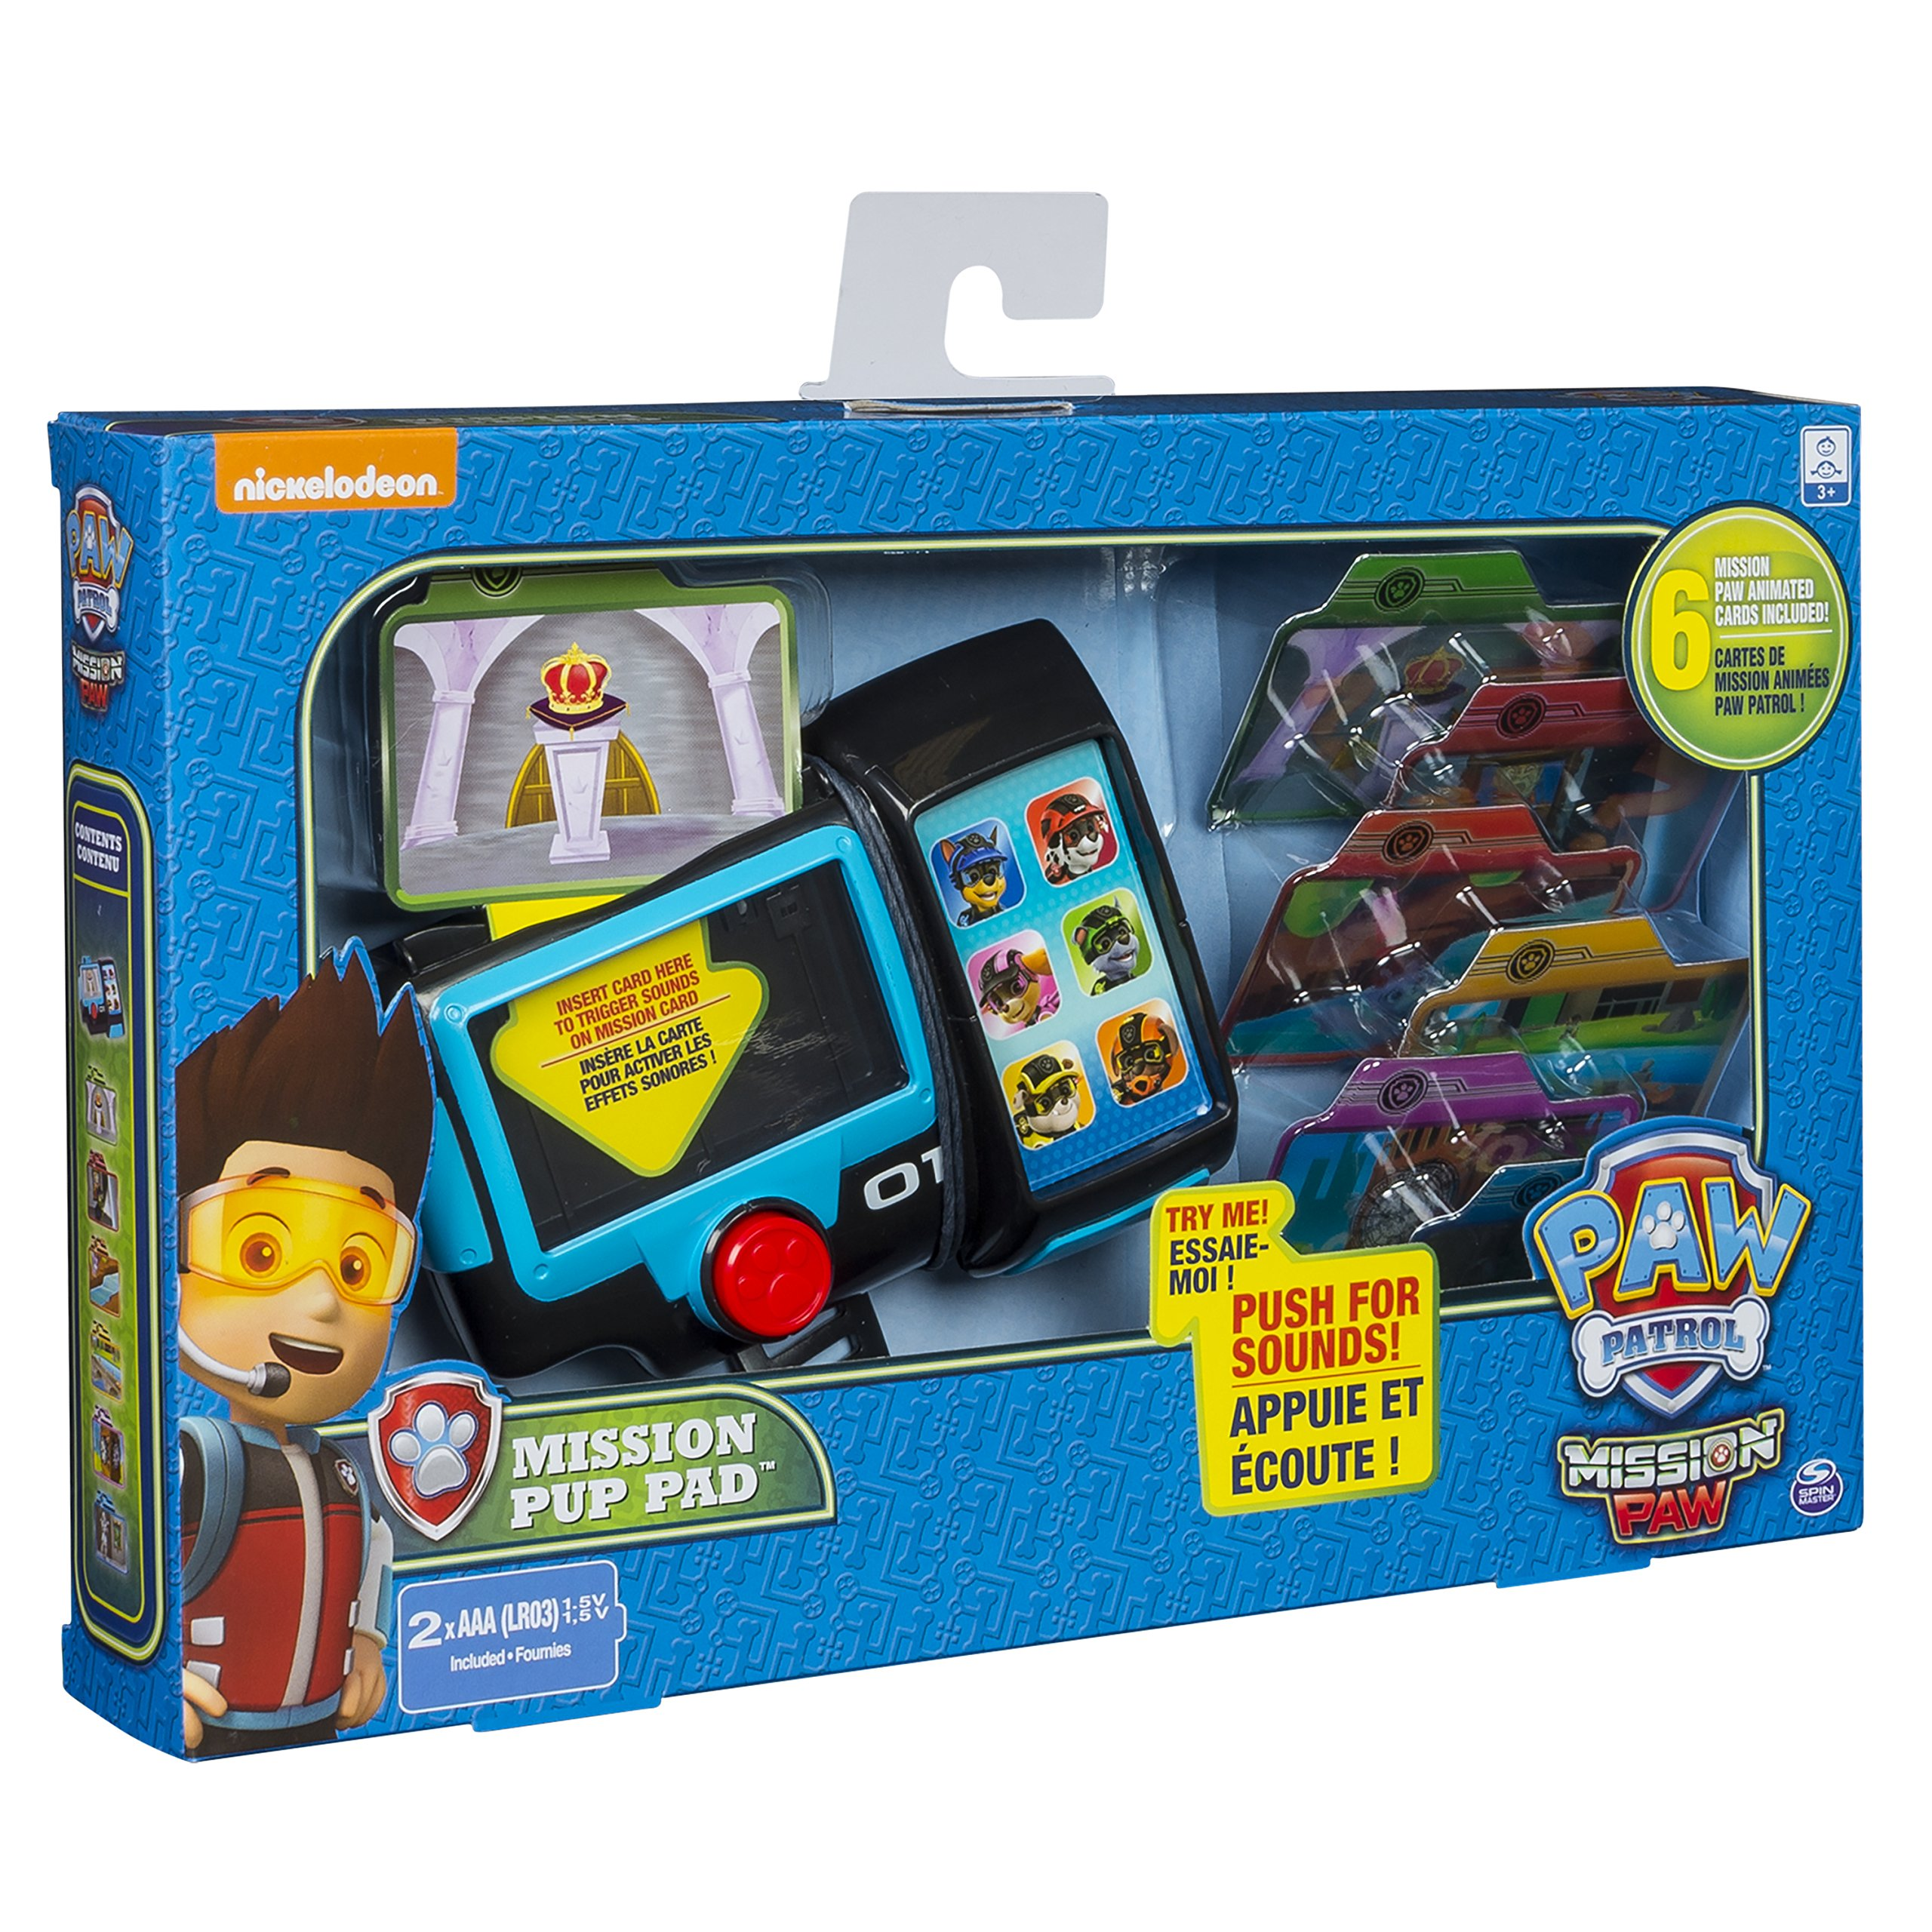 Paw Patrol 6037710 Mission Pup Pad Game, Multi Colour